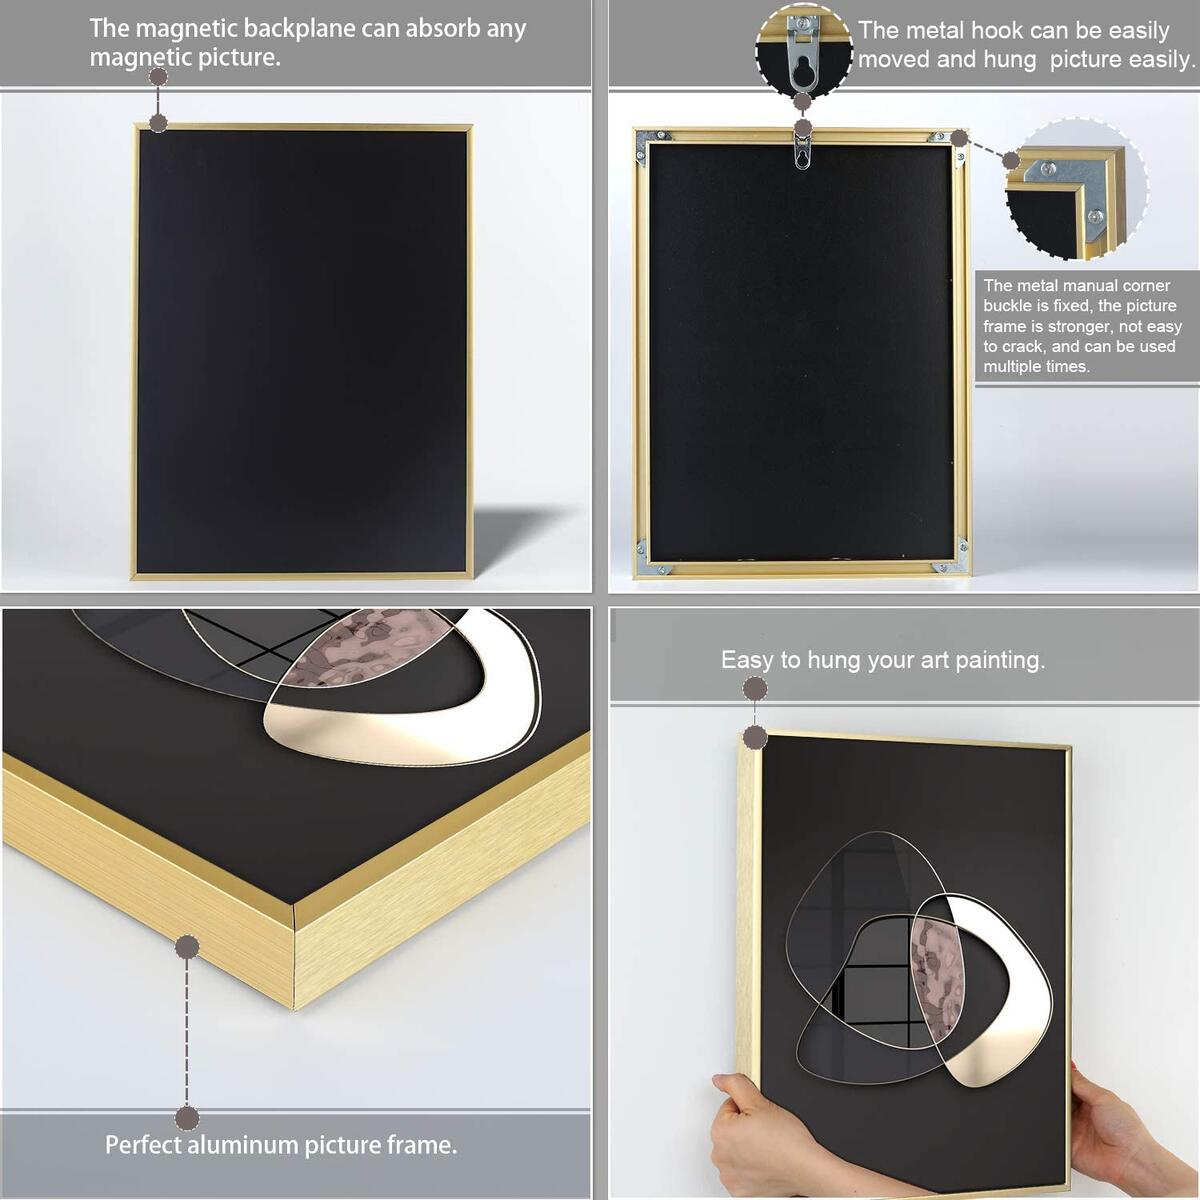 Archome 11x14 Picture Frame, Waterproof Picture Frames with Free Magnetic Wall Decor Picture, Aluminum Gold Frame with Magnetic Mat for 8x10 Picture for Wall Mounting